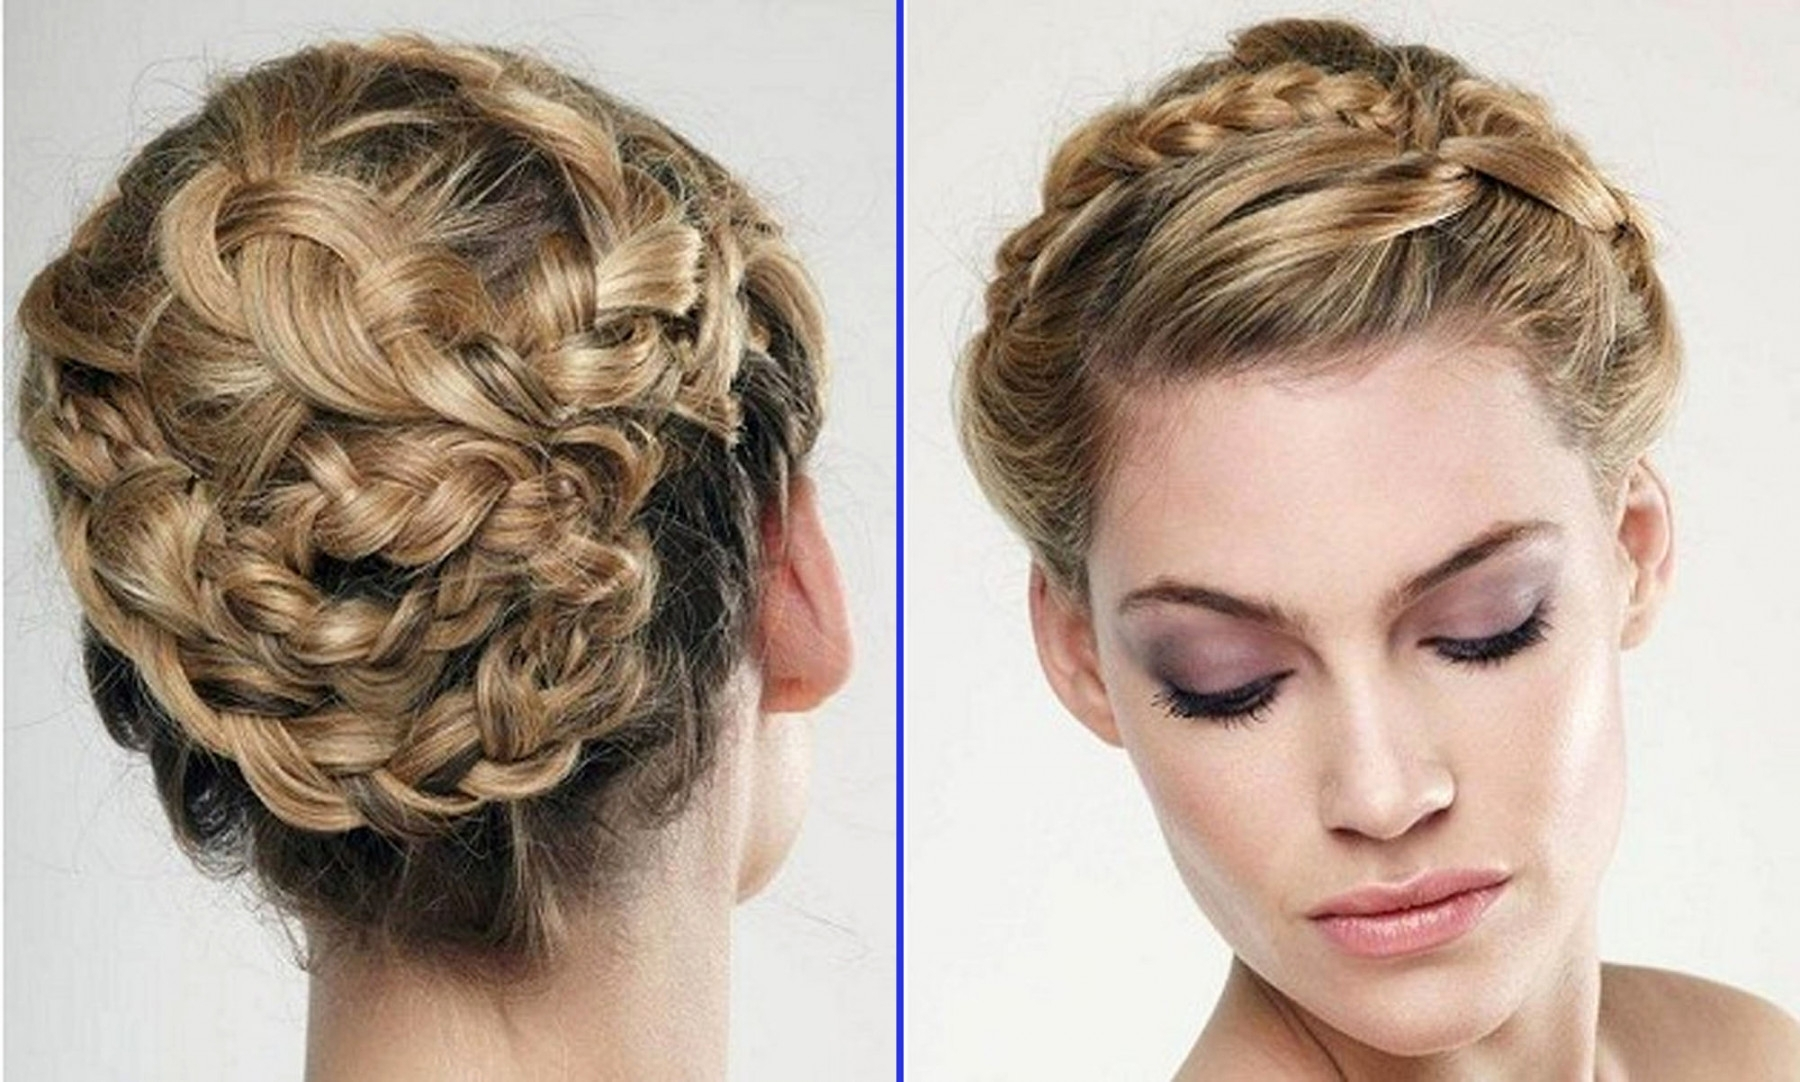 Cute Updo Hairstyles Short Hair Marvelous Short Wedding Hairstyles Regarding Wedding Updo Hairstyles For Short Hair (View 6 of 15)